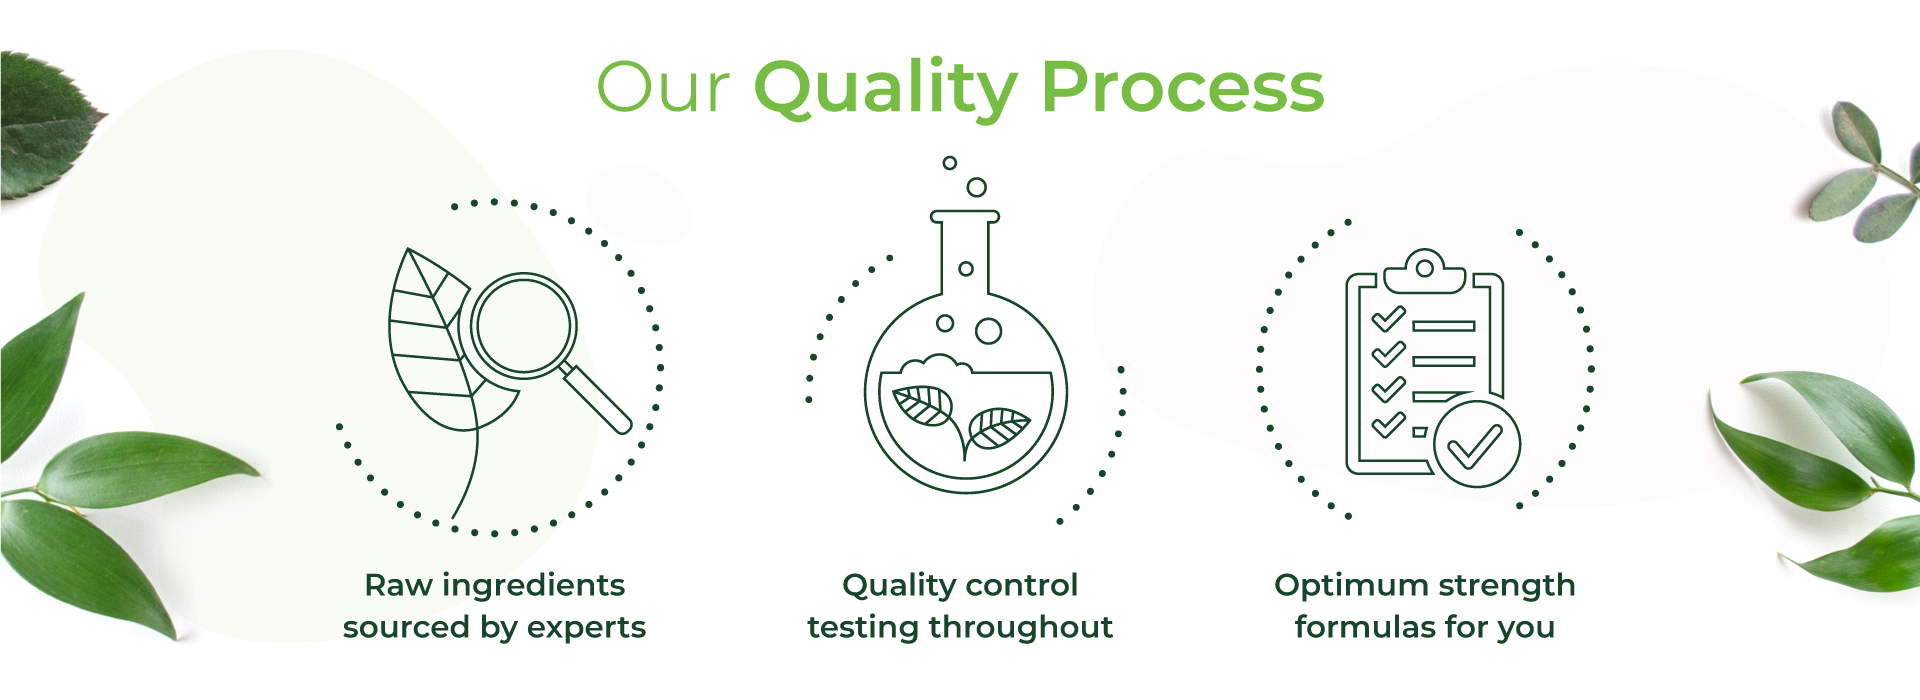 Our Quality Process - Raw ingredients sourced by experts. Quality control testing throughout. Optimum strength formulas for you.